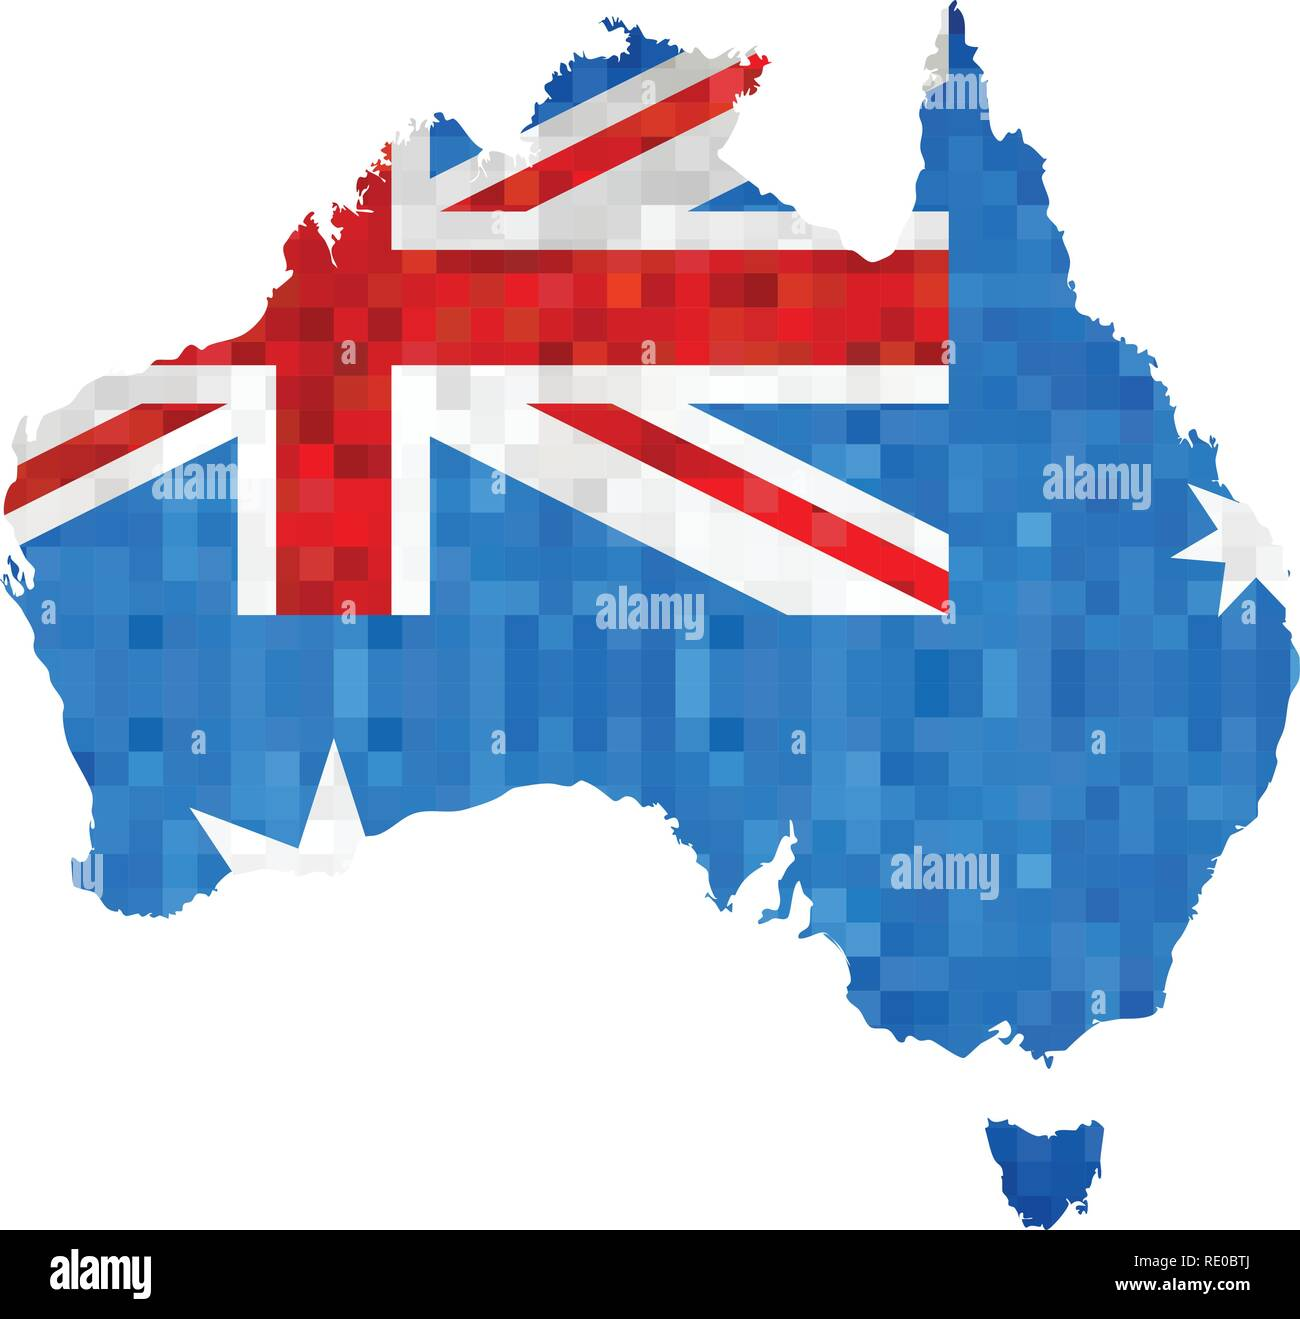 Australia Map And Flag.Grunge Australia Map With Flag Inside Illustration Abstract